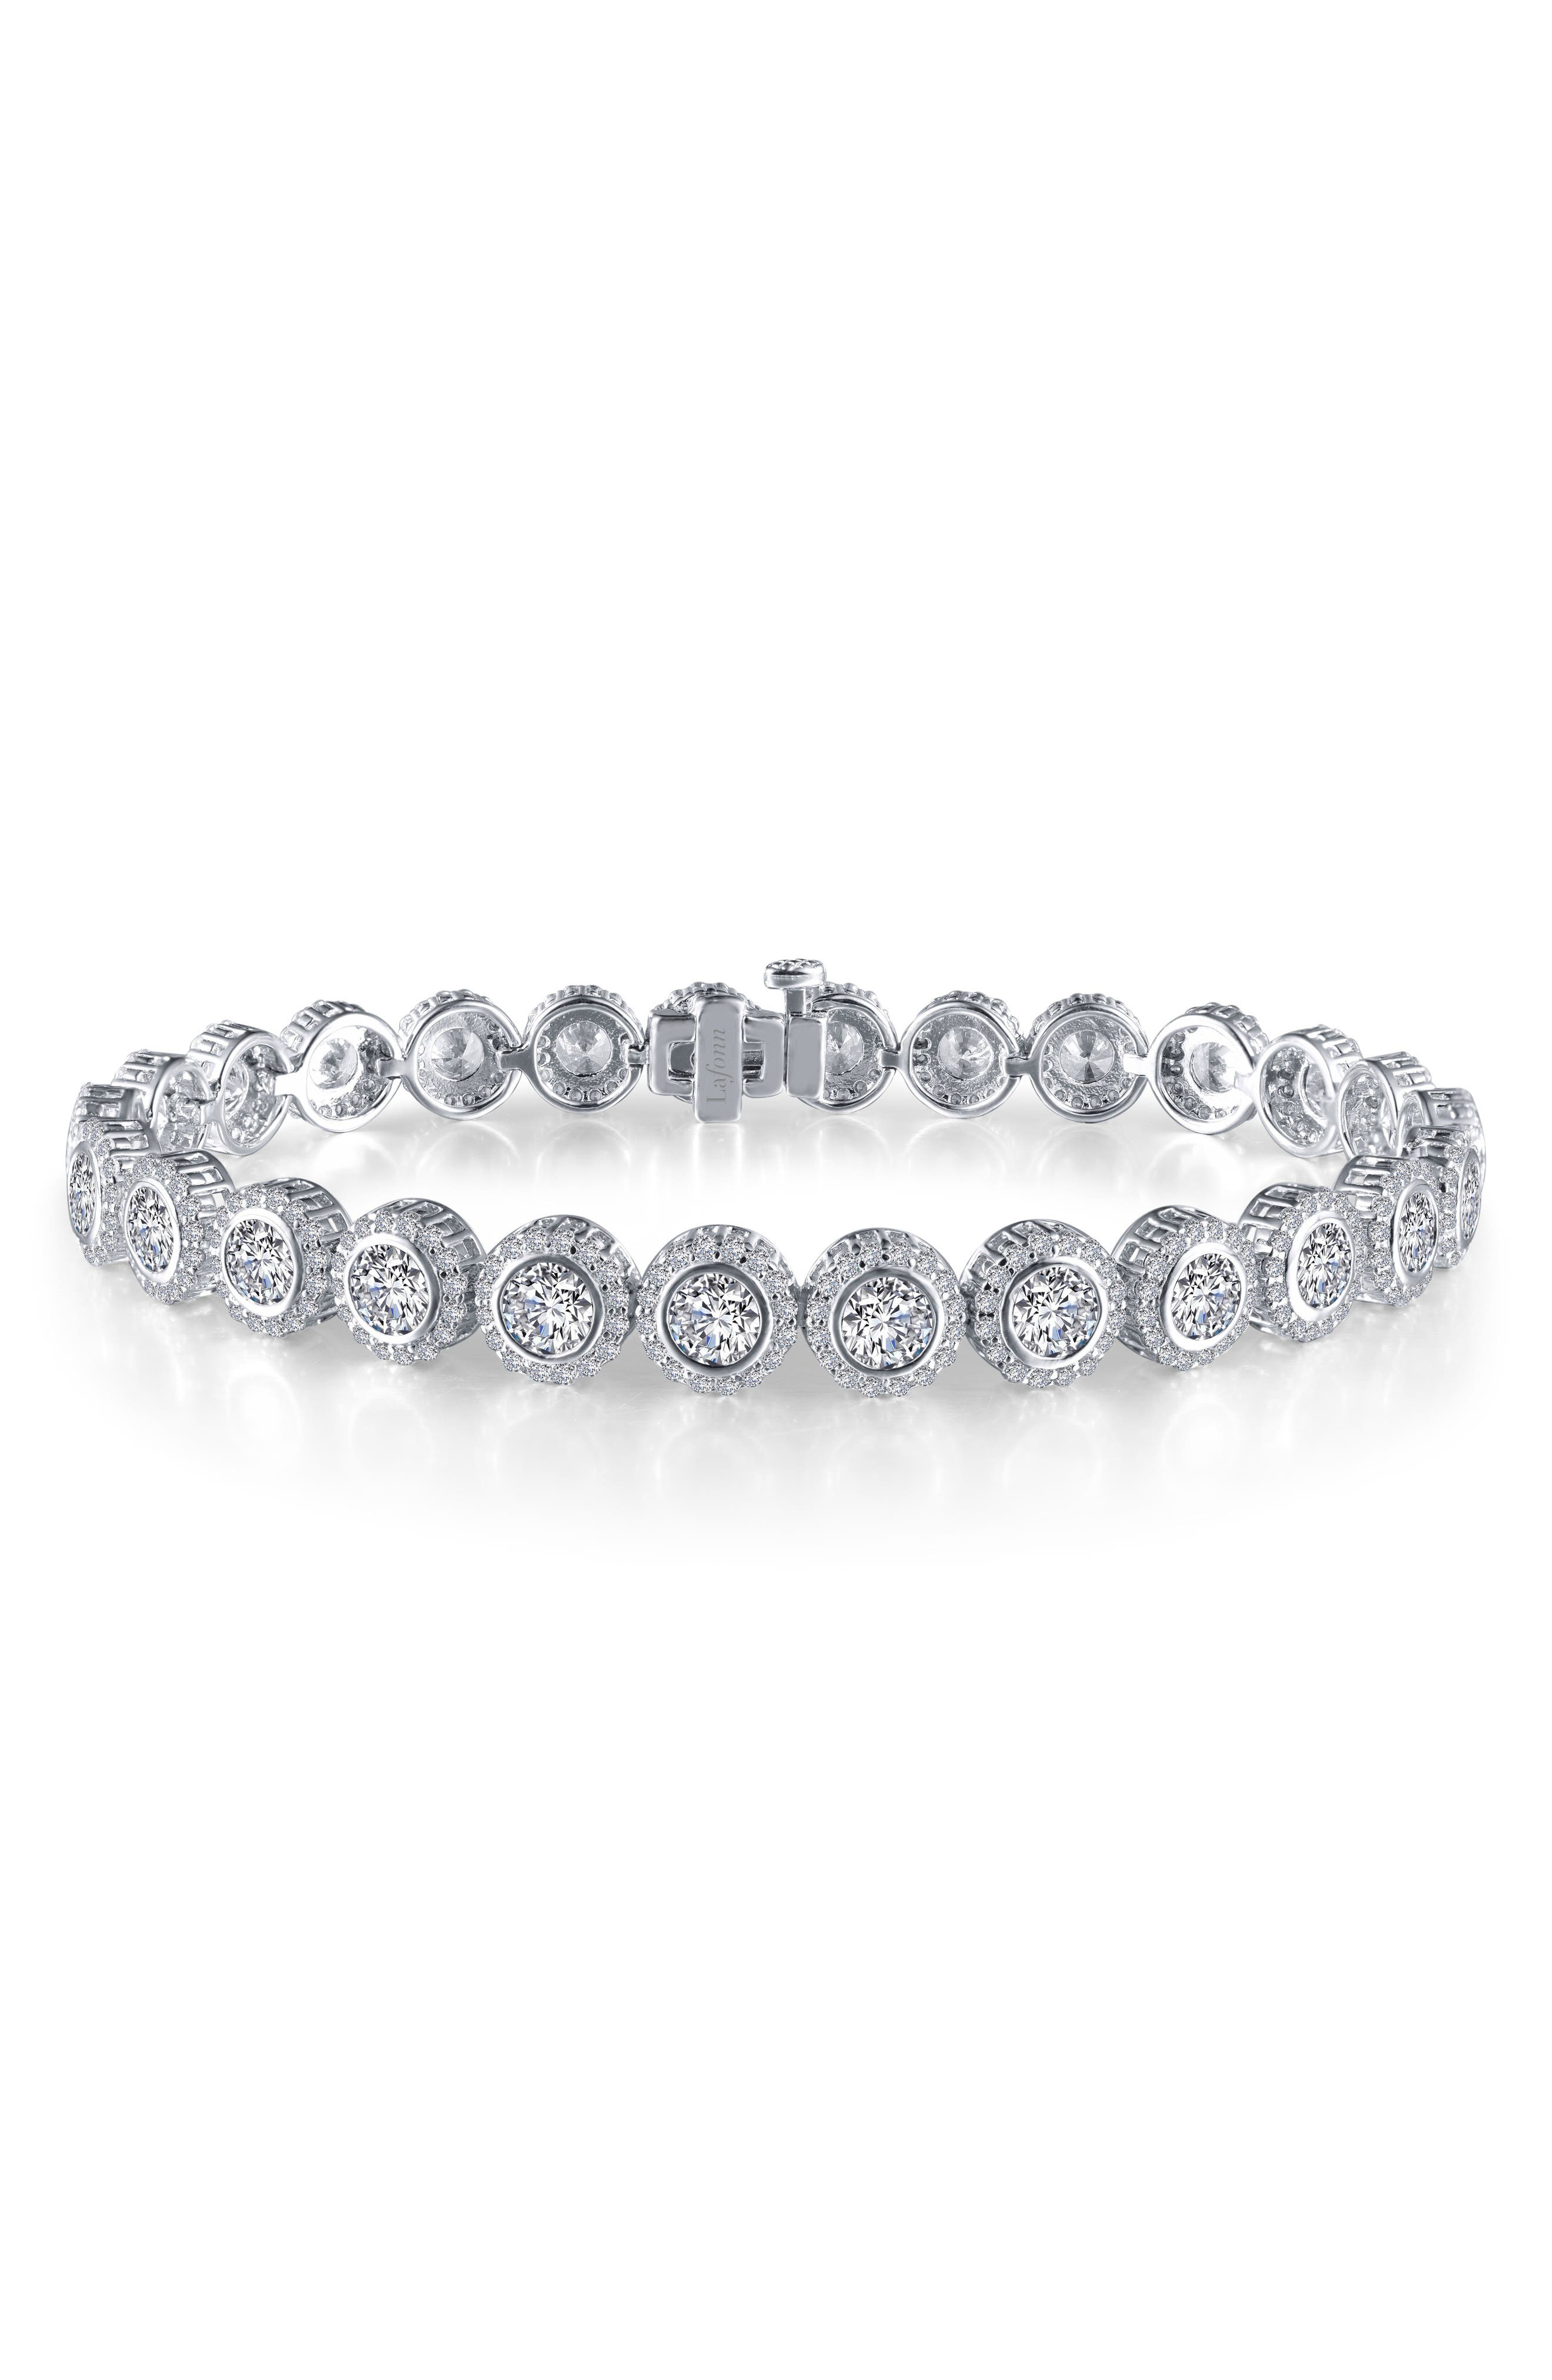 Halo Simulated Diamond Tennis Bracelet,                         Main,                         color, Silver/ Clear